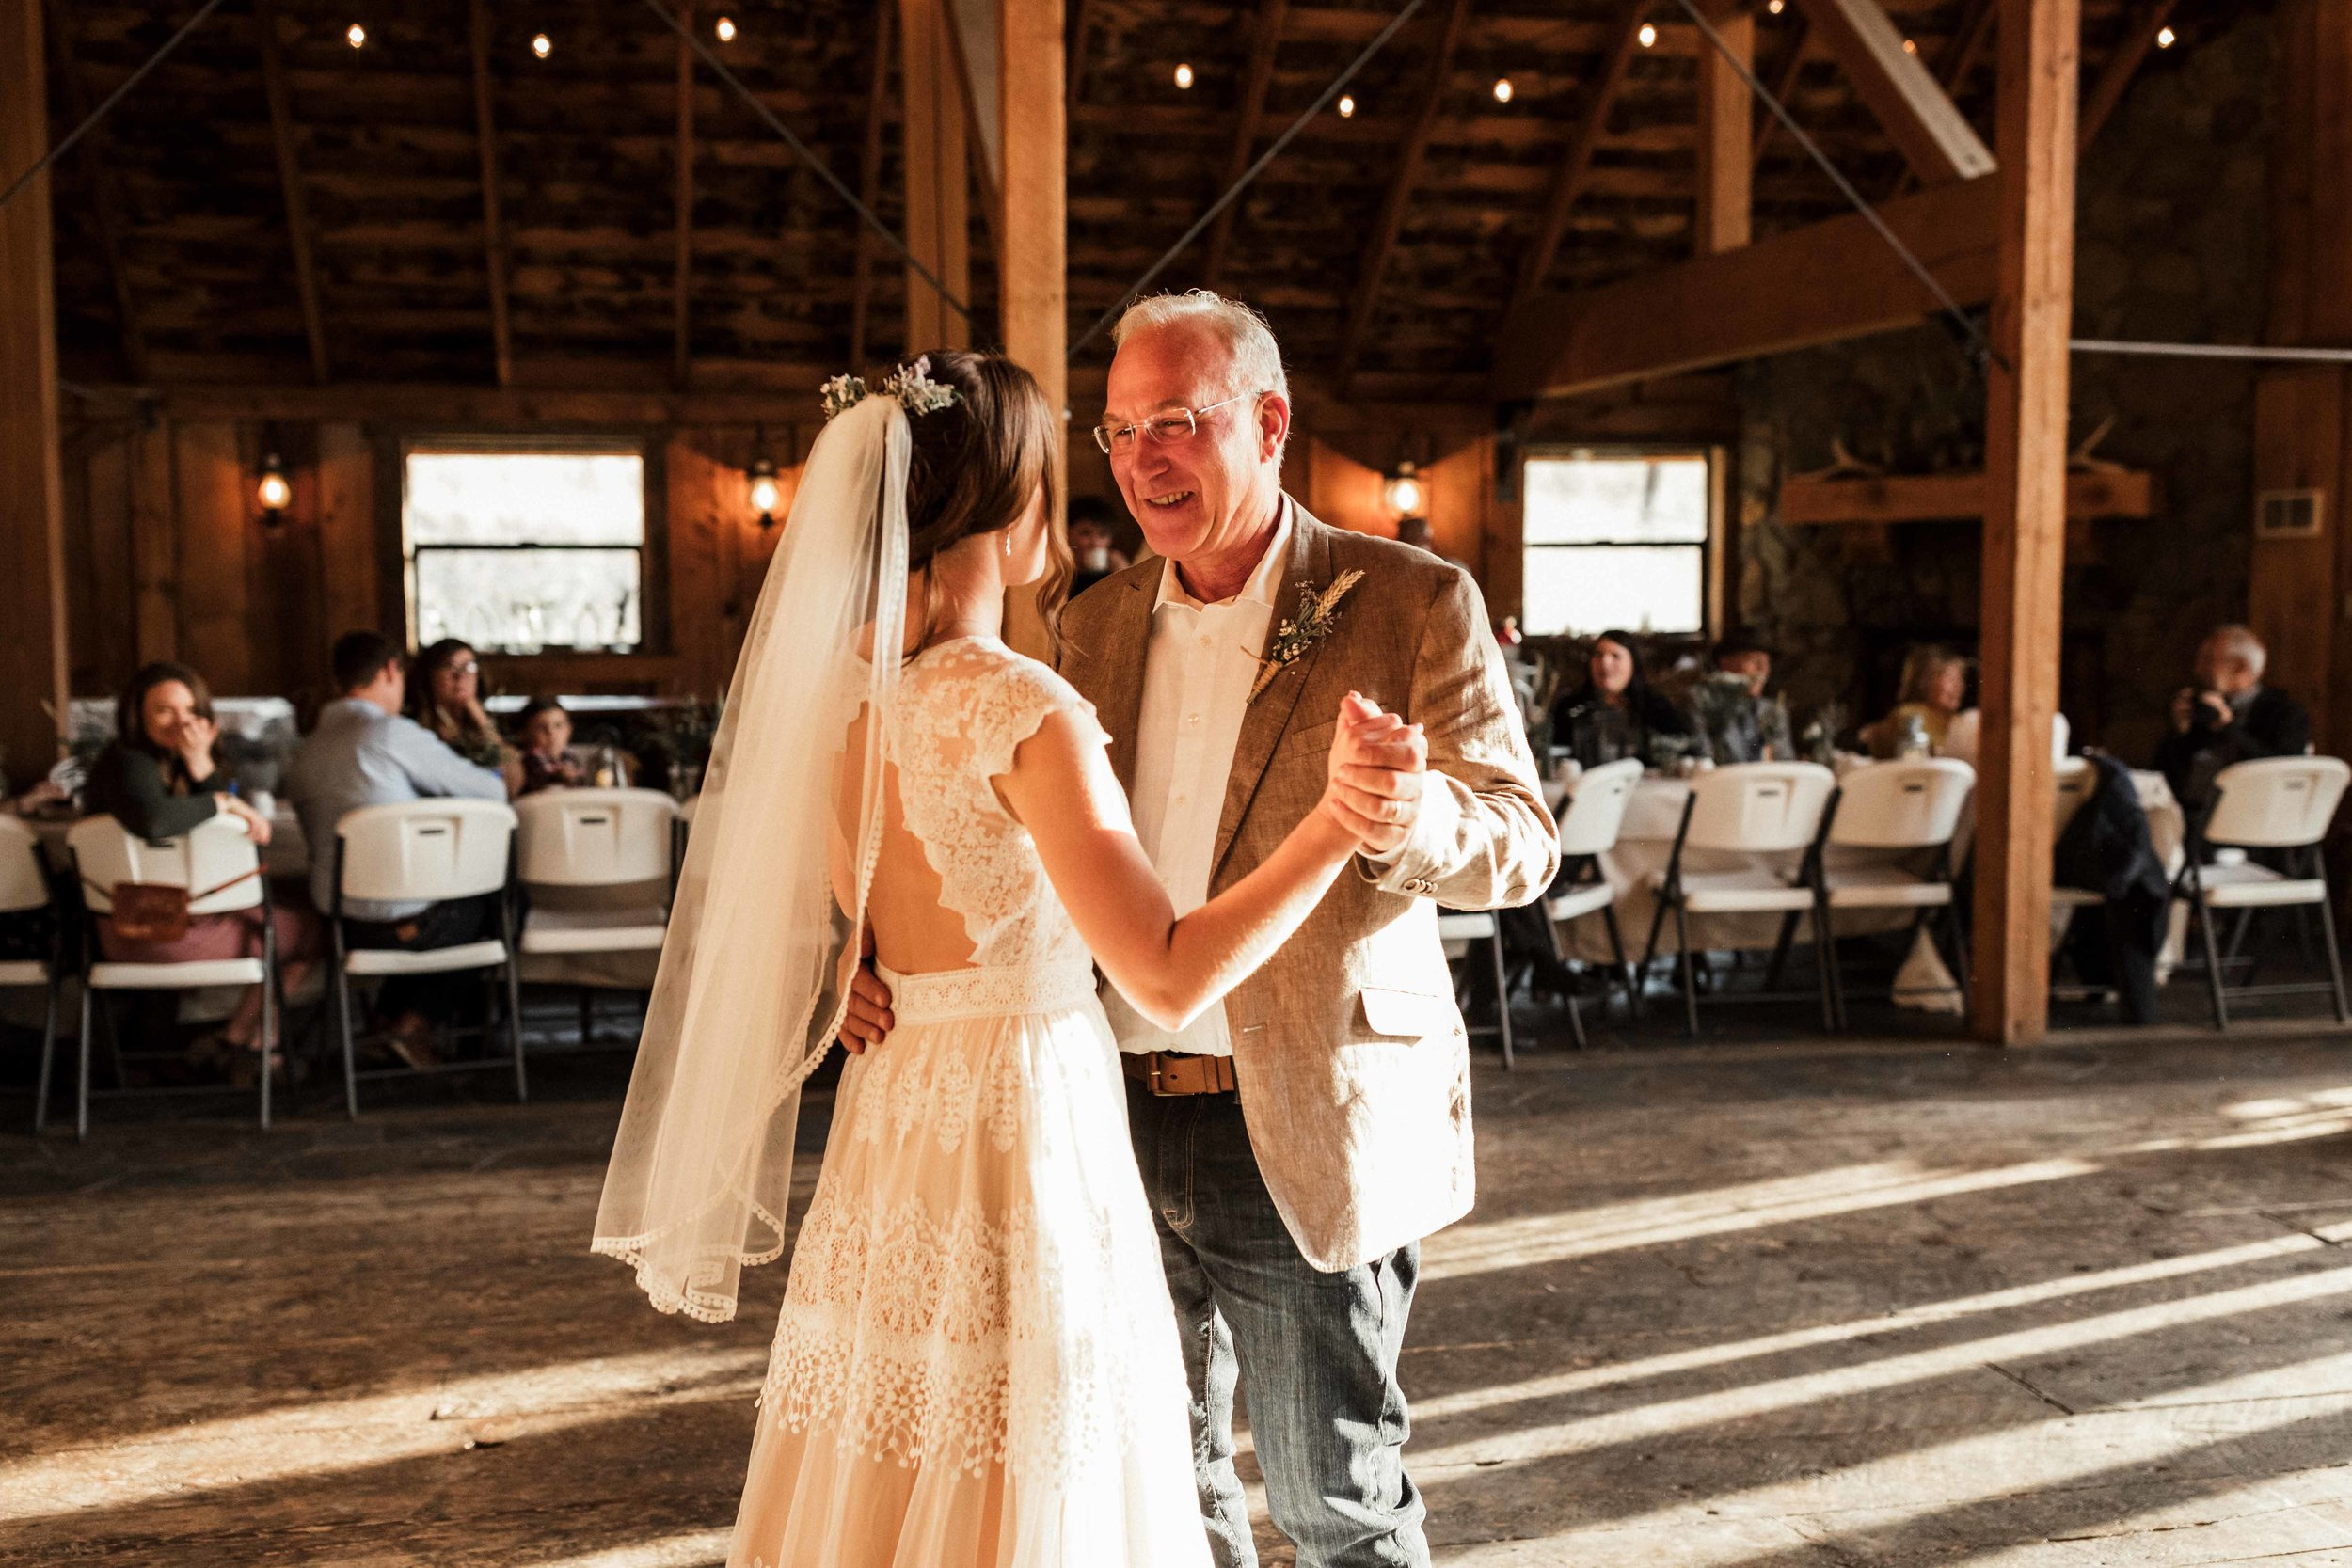 the-cattle-barn-wedding-72.jpg